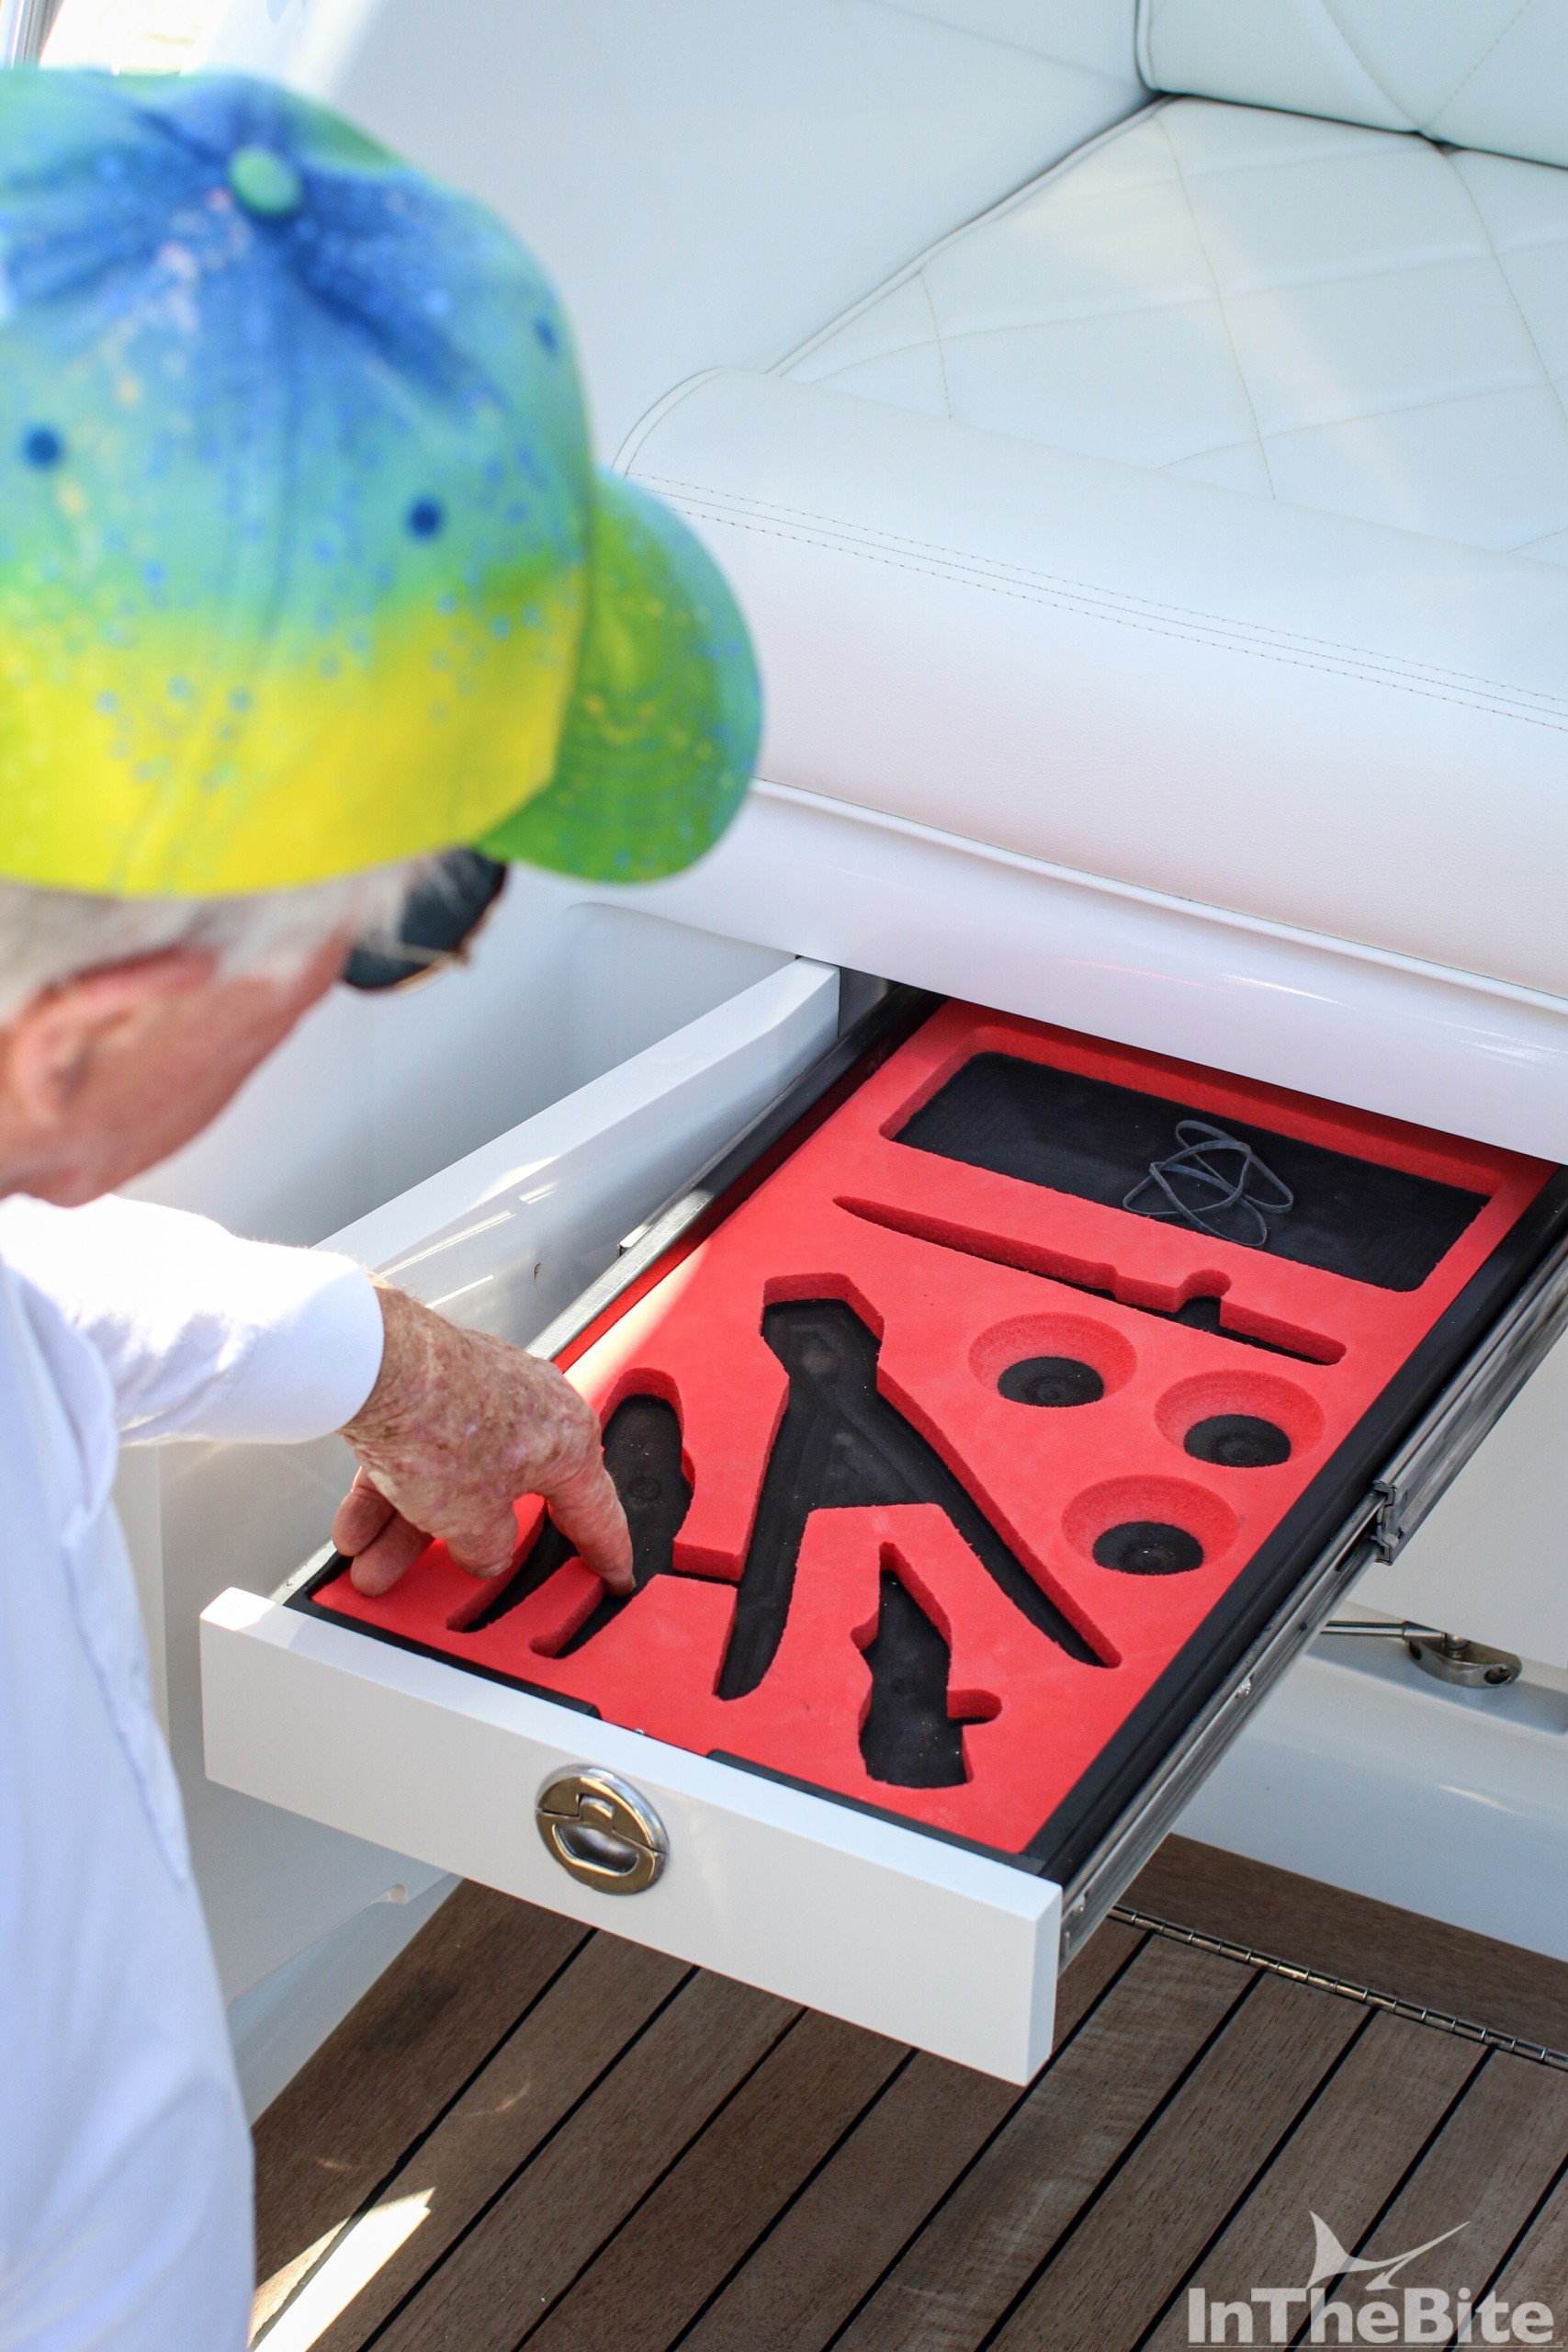 Nick Smith pointing to a tool drawer on his 72 bayliss old reliable